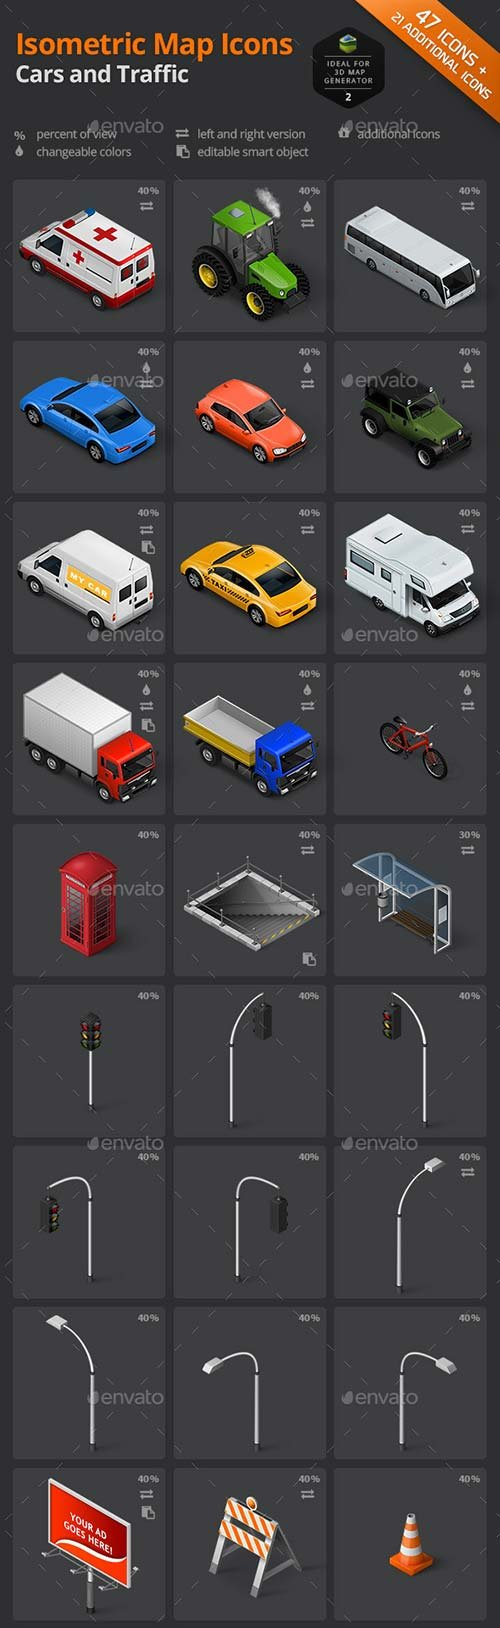 GraphicRiver Isometric Map Icons - Cars and Traffic